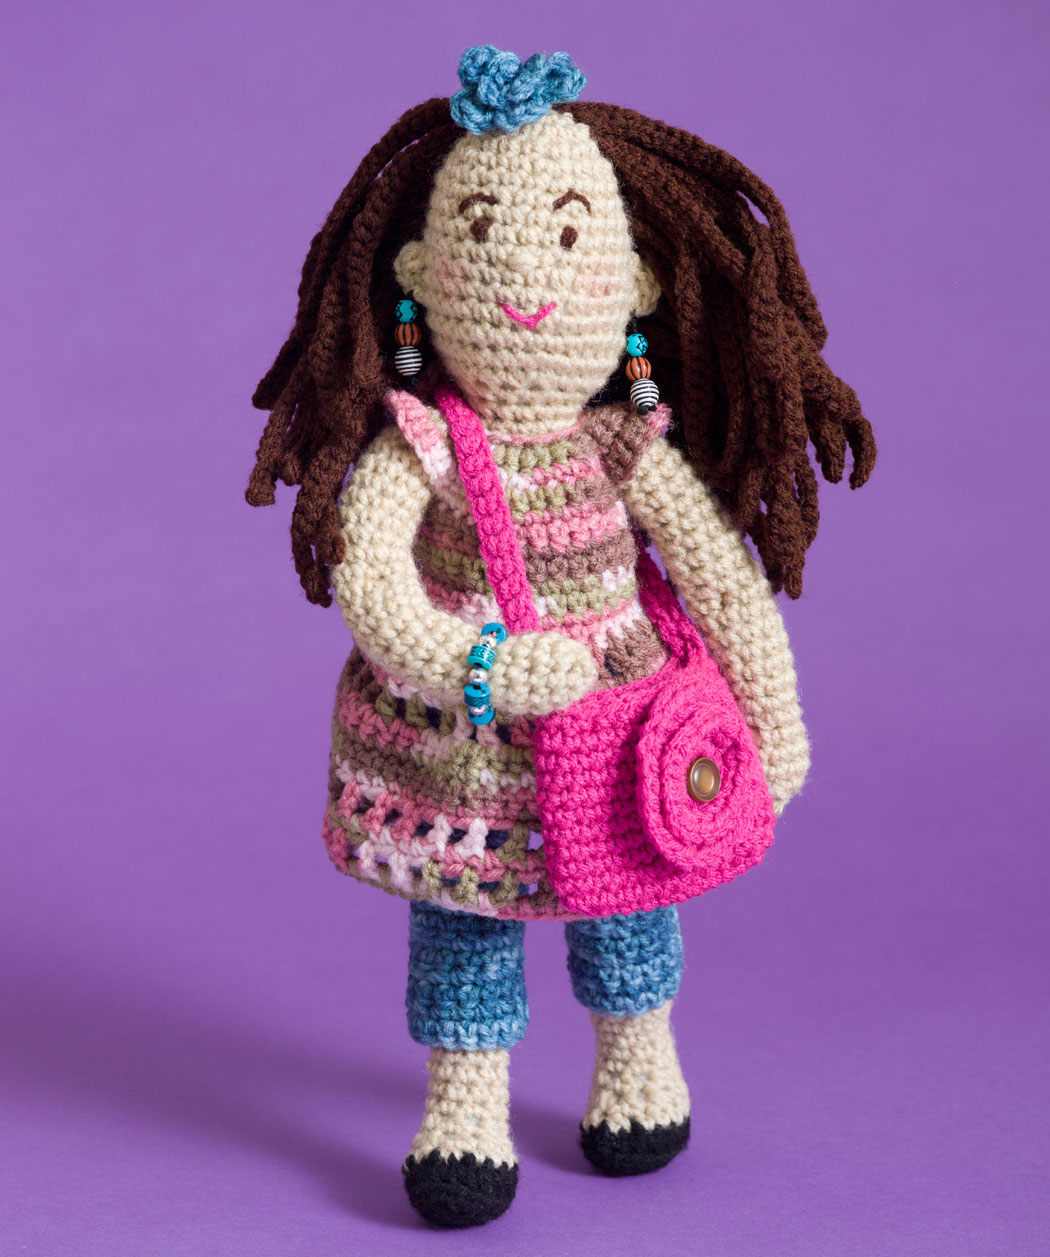 Amigurumi Pattern Dolls : 2000 Free Amigurumi Patterns: August 2011